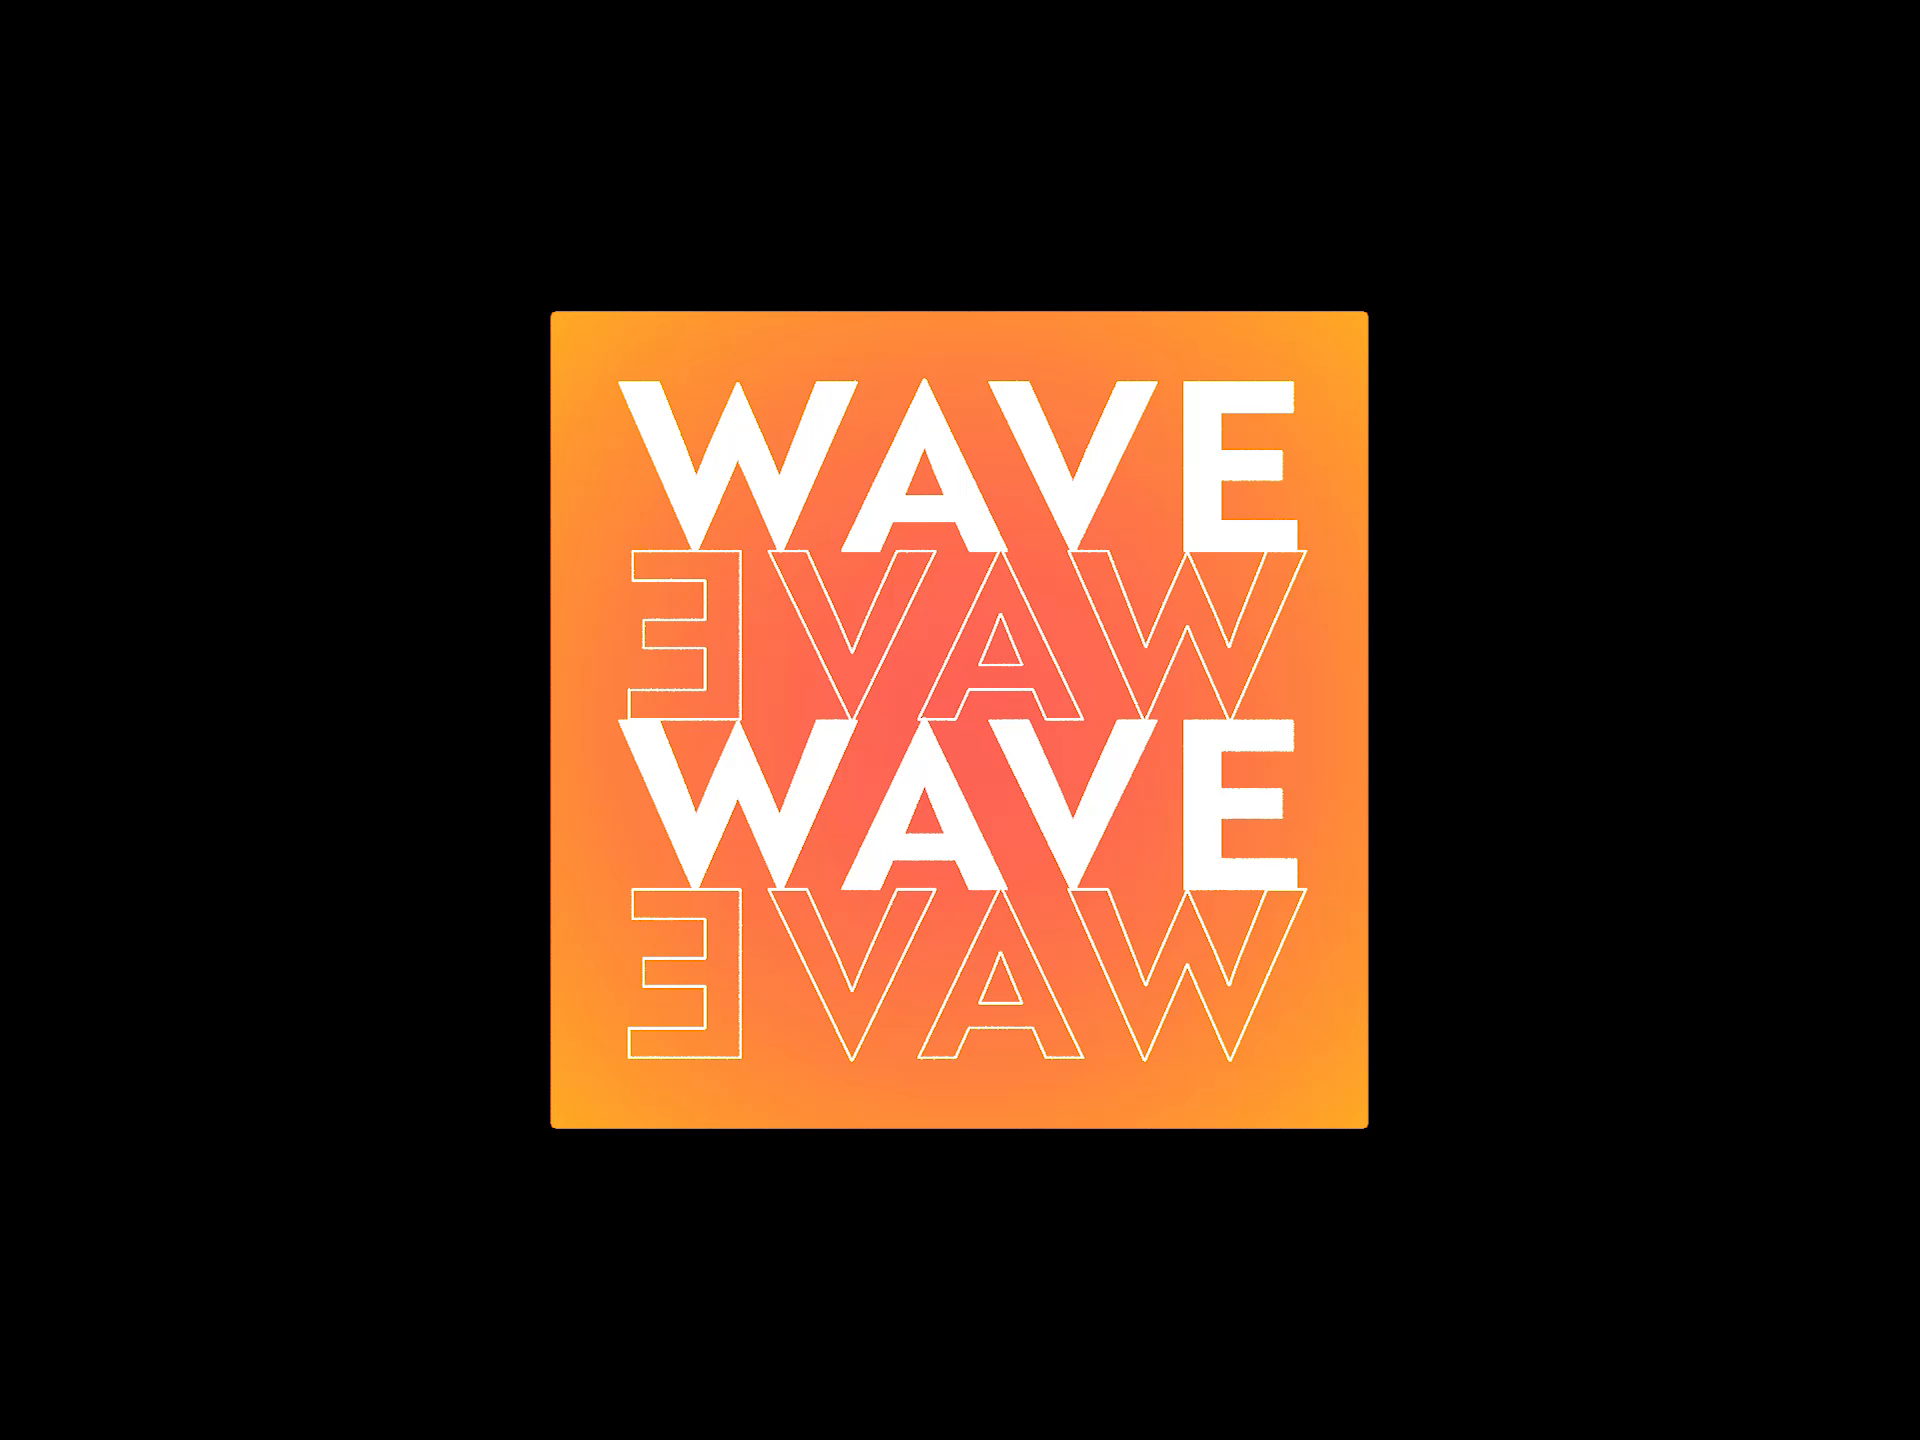 WAVE EVAW FLAG